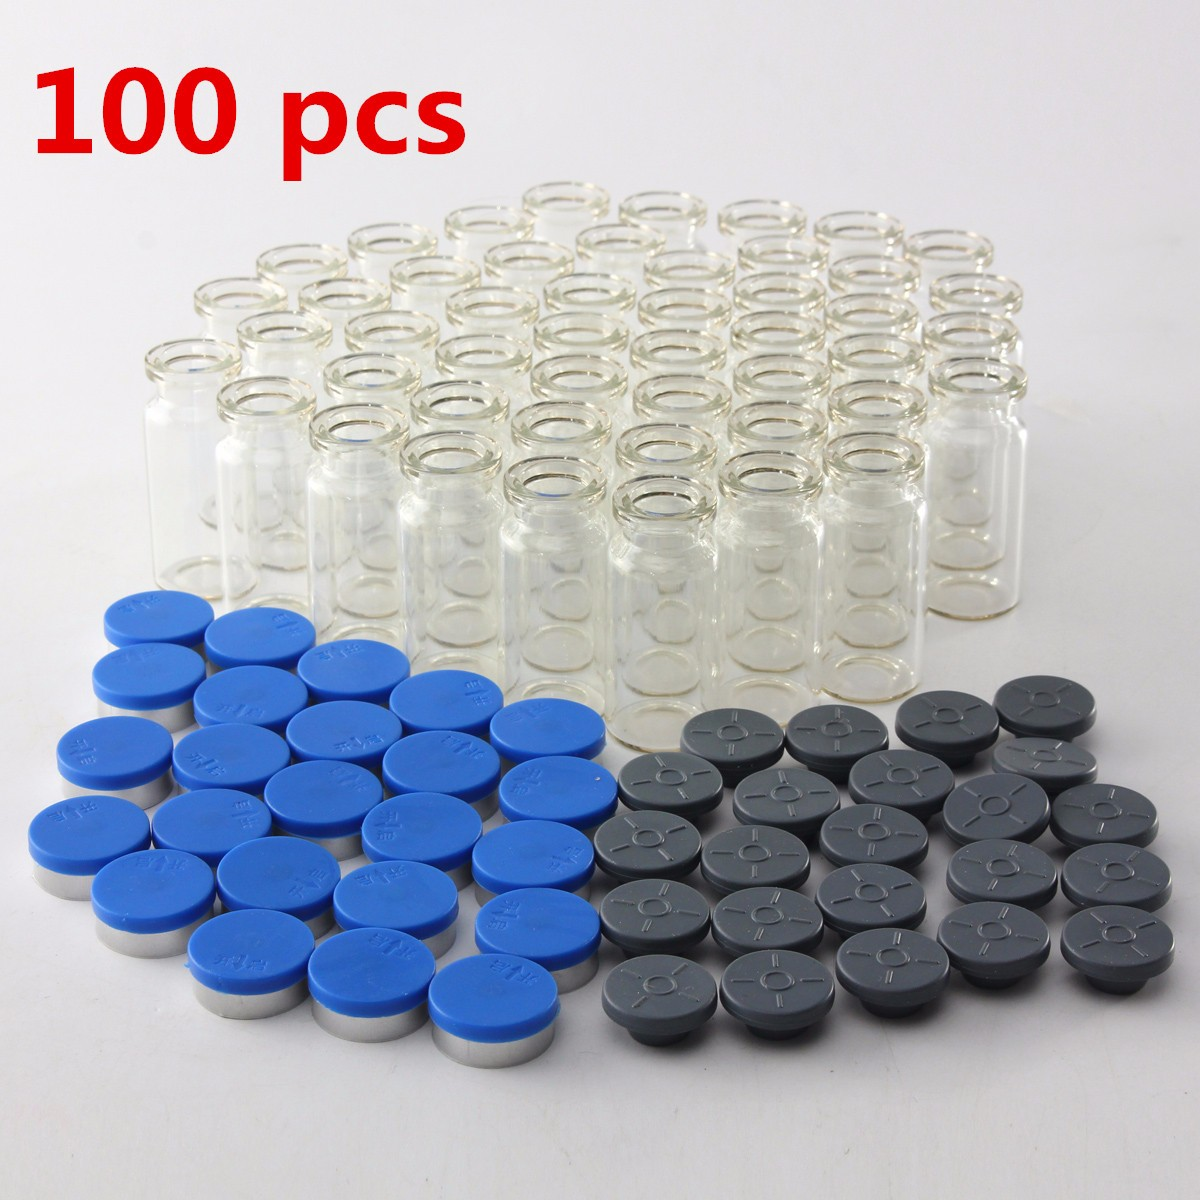 100pcs 10ML Clear Injection Glass Vial/Stopper With Flip Off Caps Small Medicine Bottles Experimental Test Liquid Containers